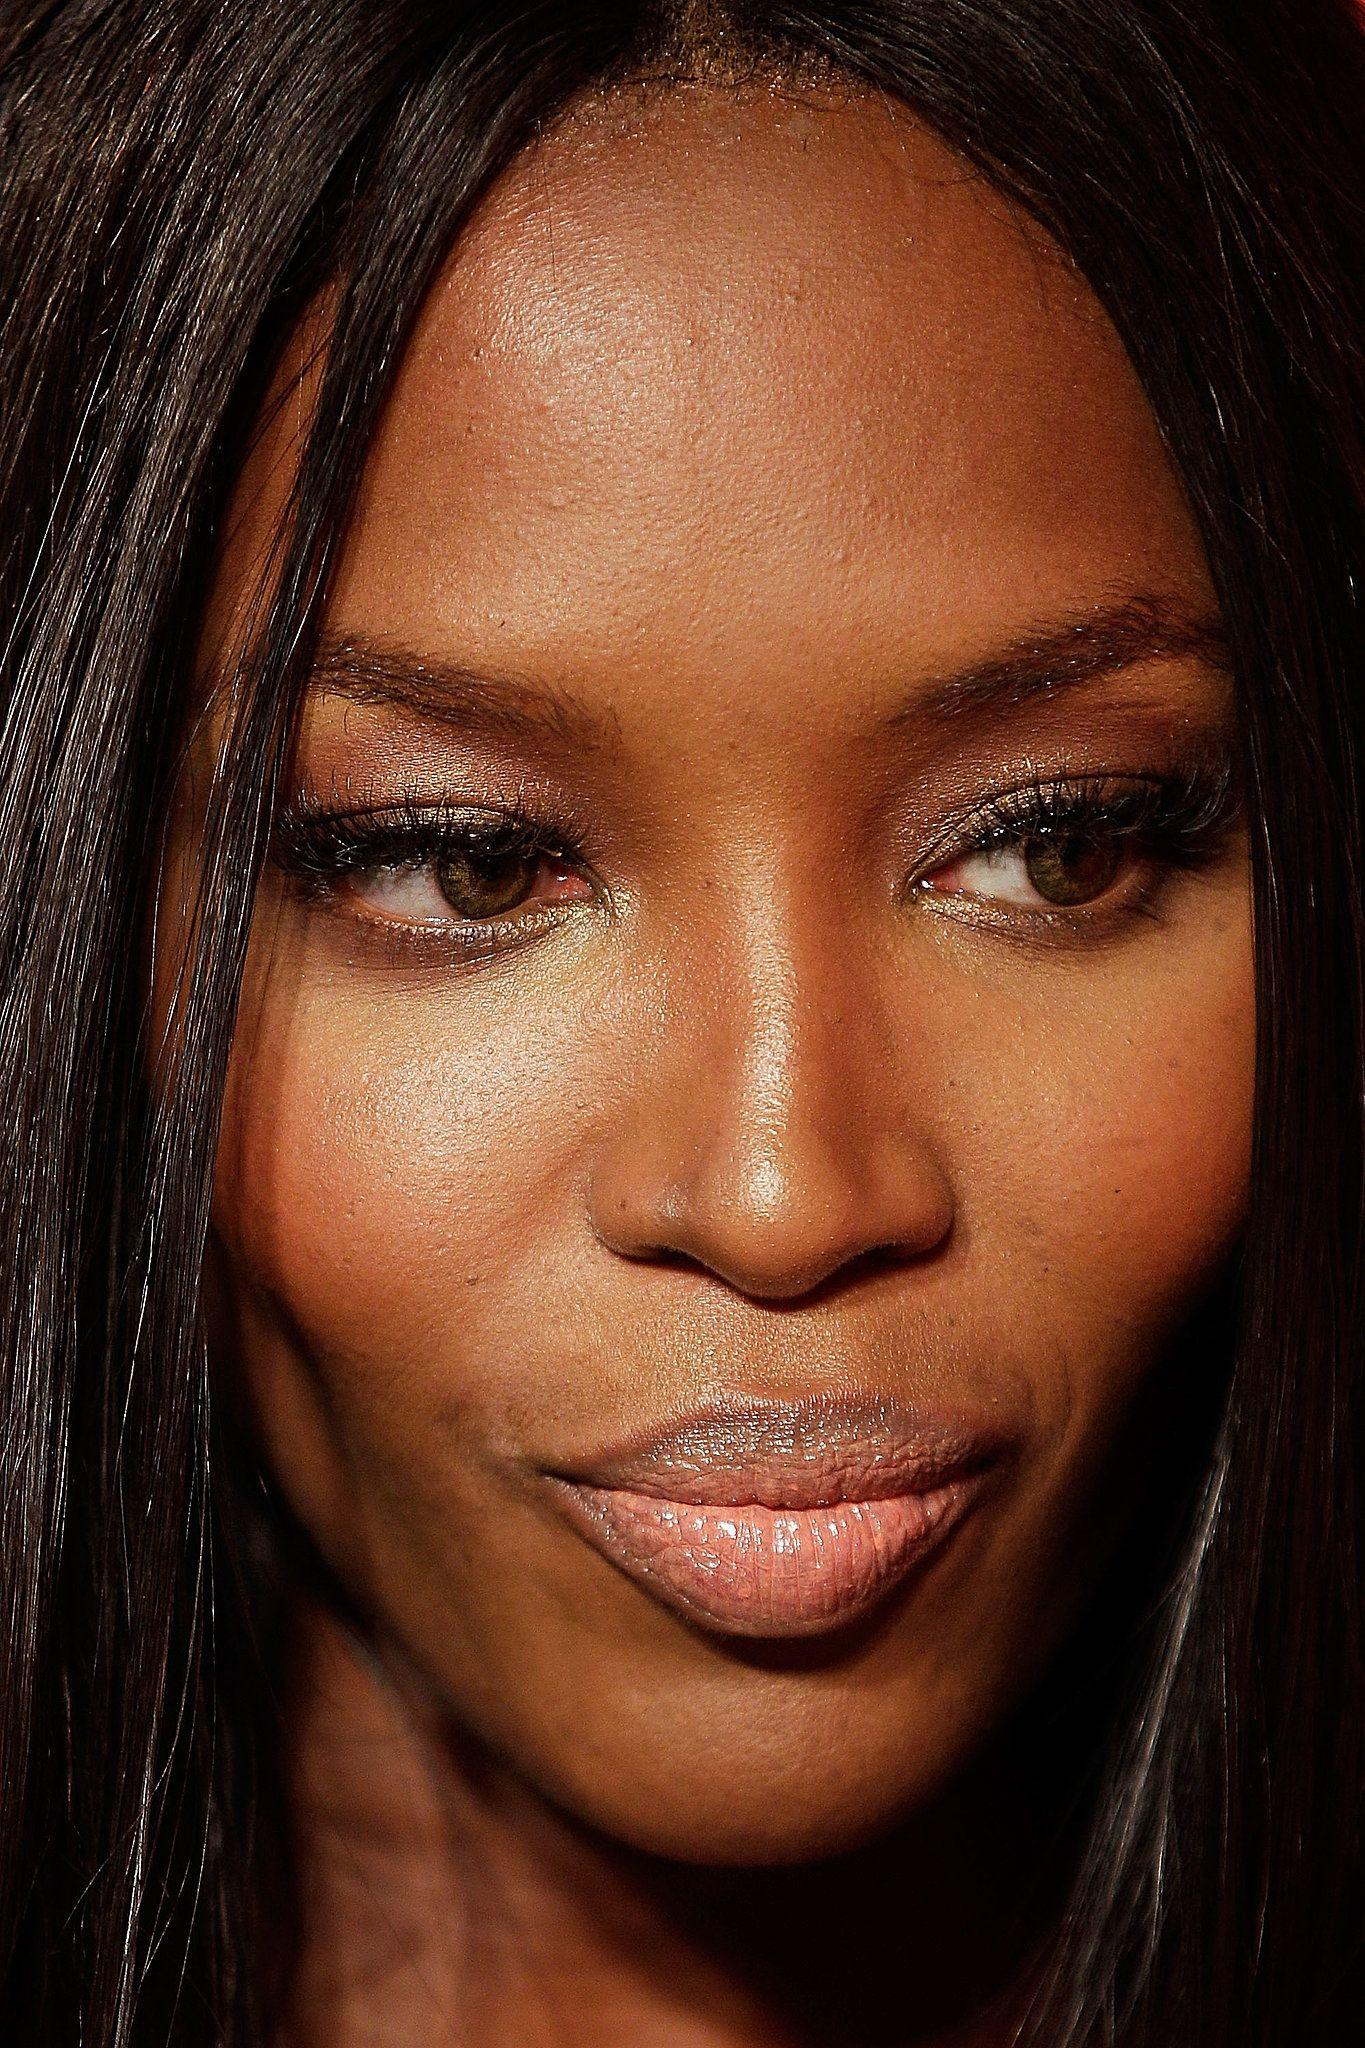 Naomi Campbell hd wallpapers | beauty | Pinterest | Naomi campbell ...